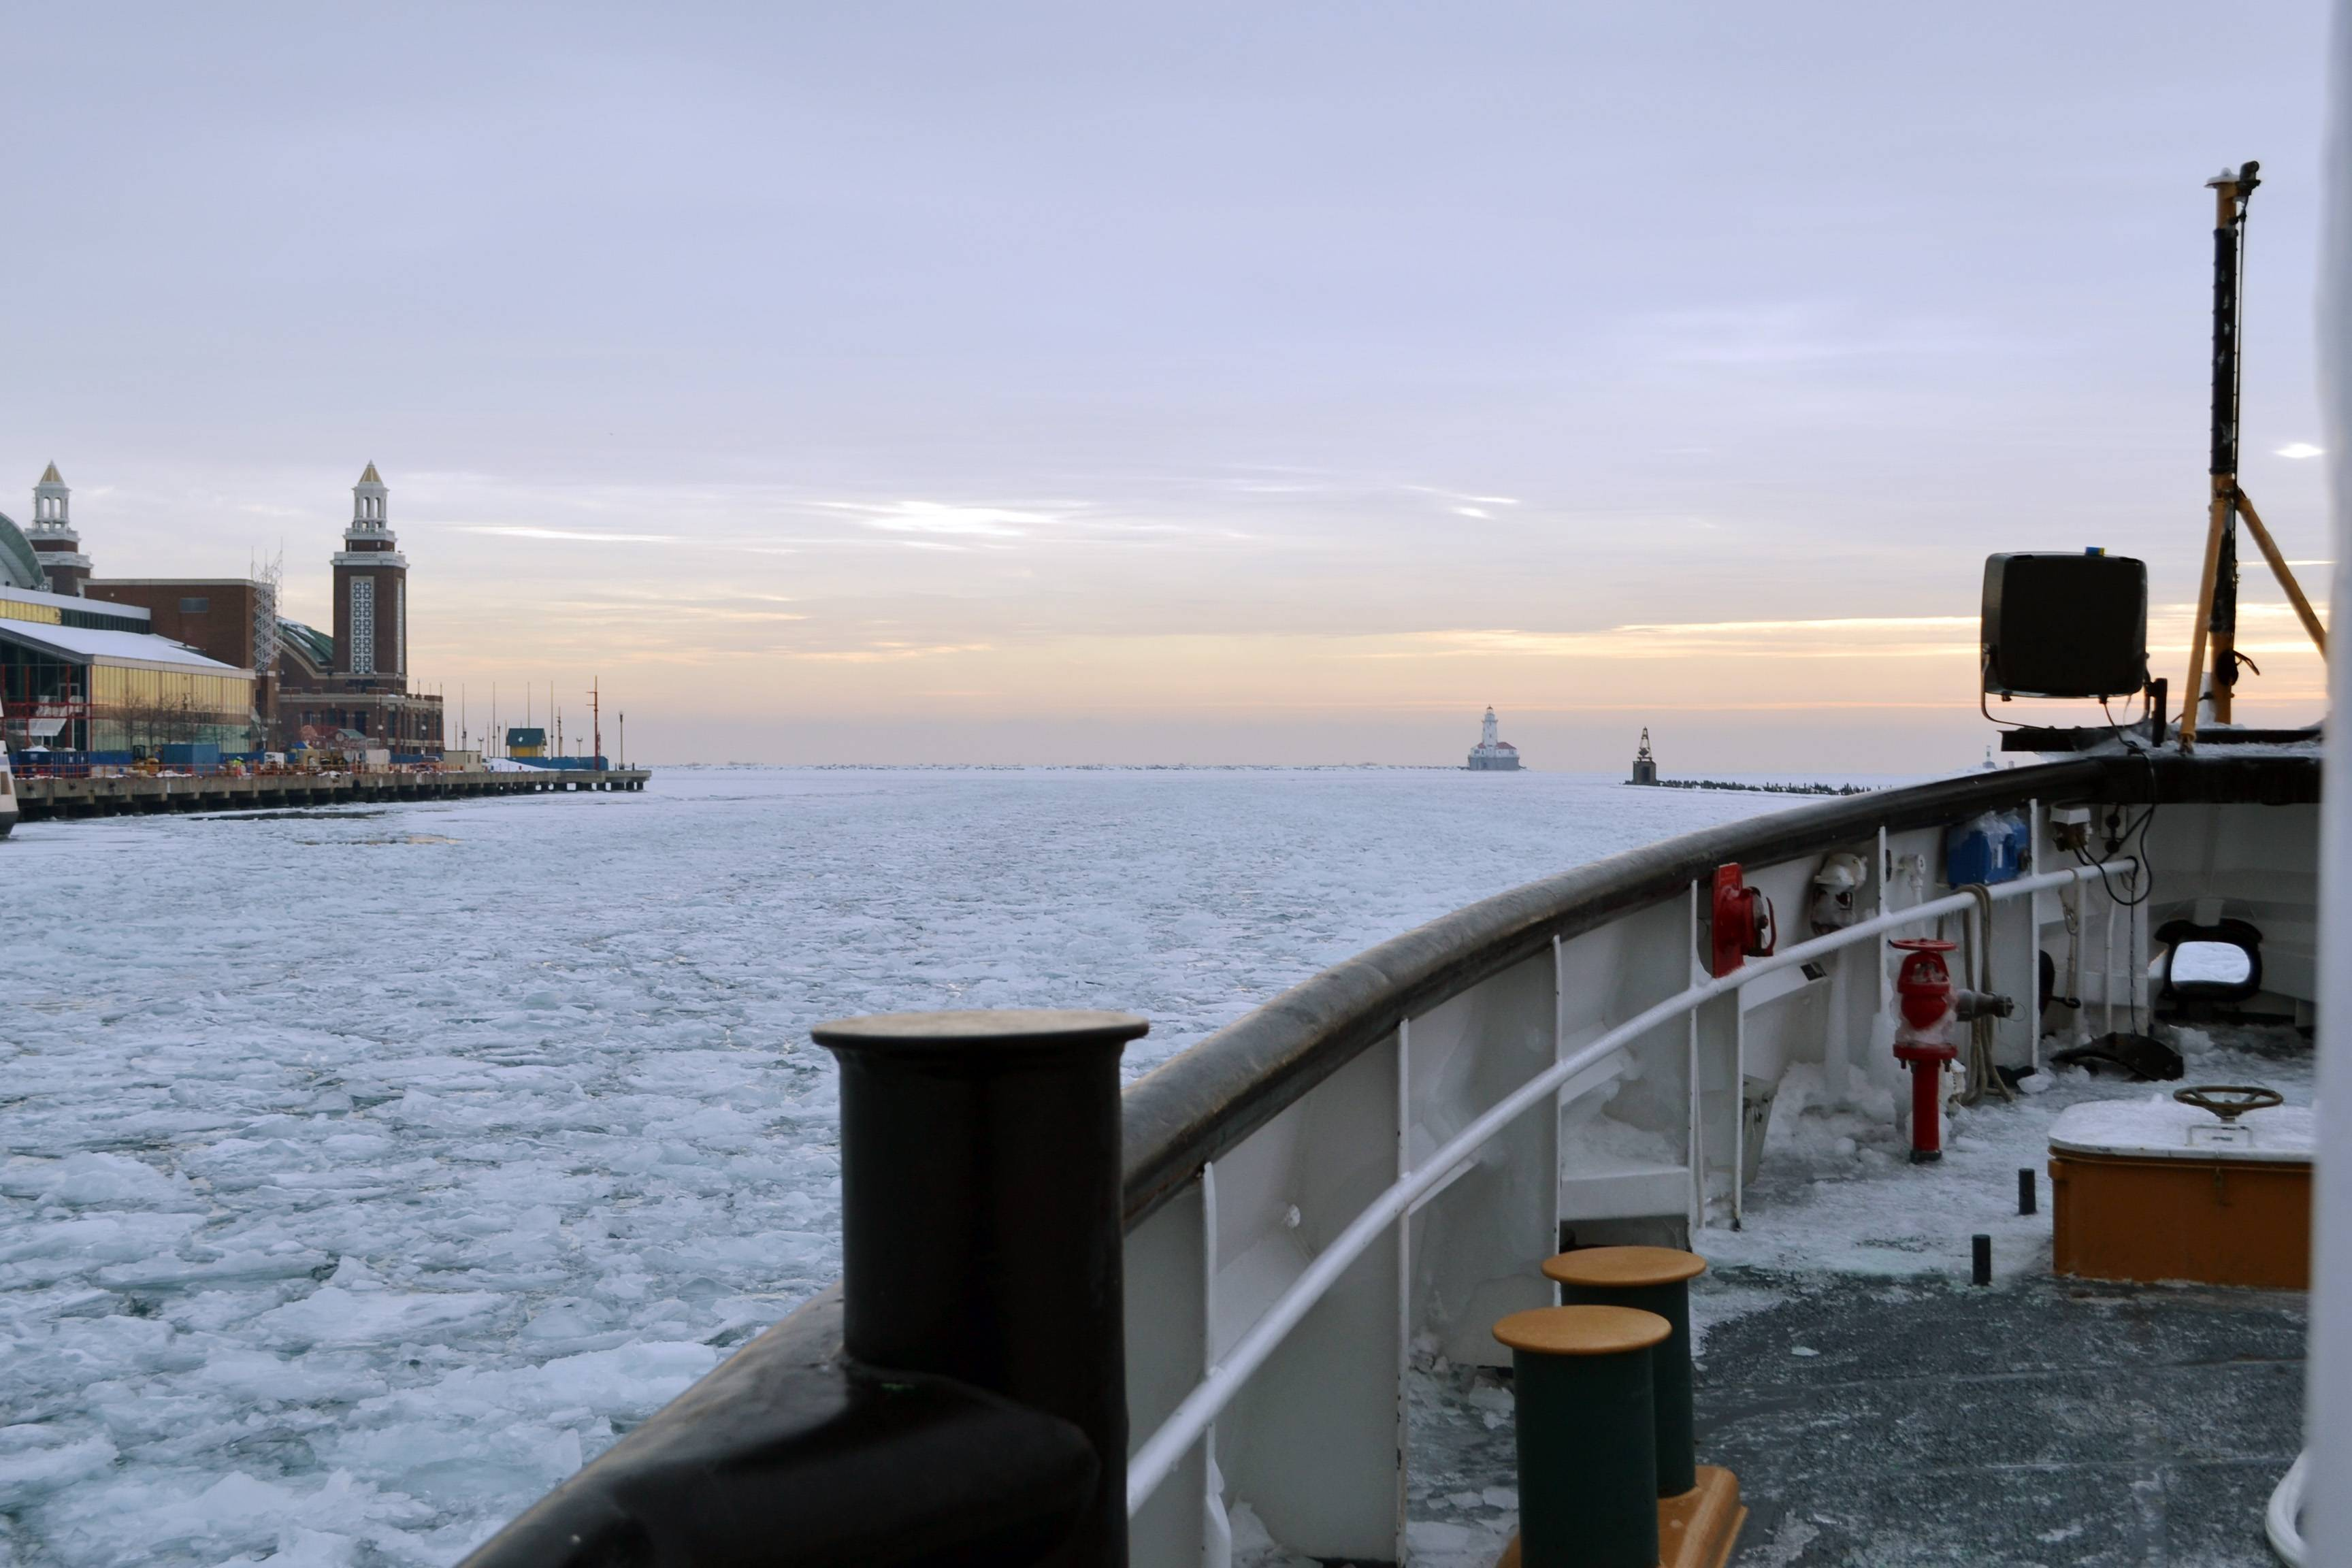 The icebreaker Biscayne Bay passes Chicago's Navy Pier as it plows through the ice-covered waters of Lake Michigan on its way to Indiana on Wednesday.